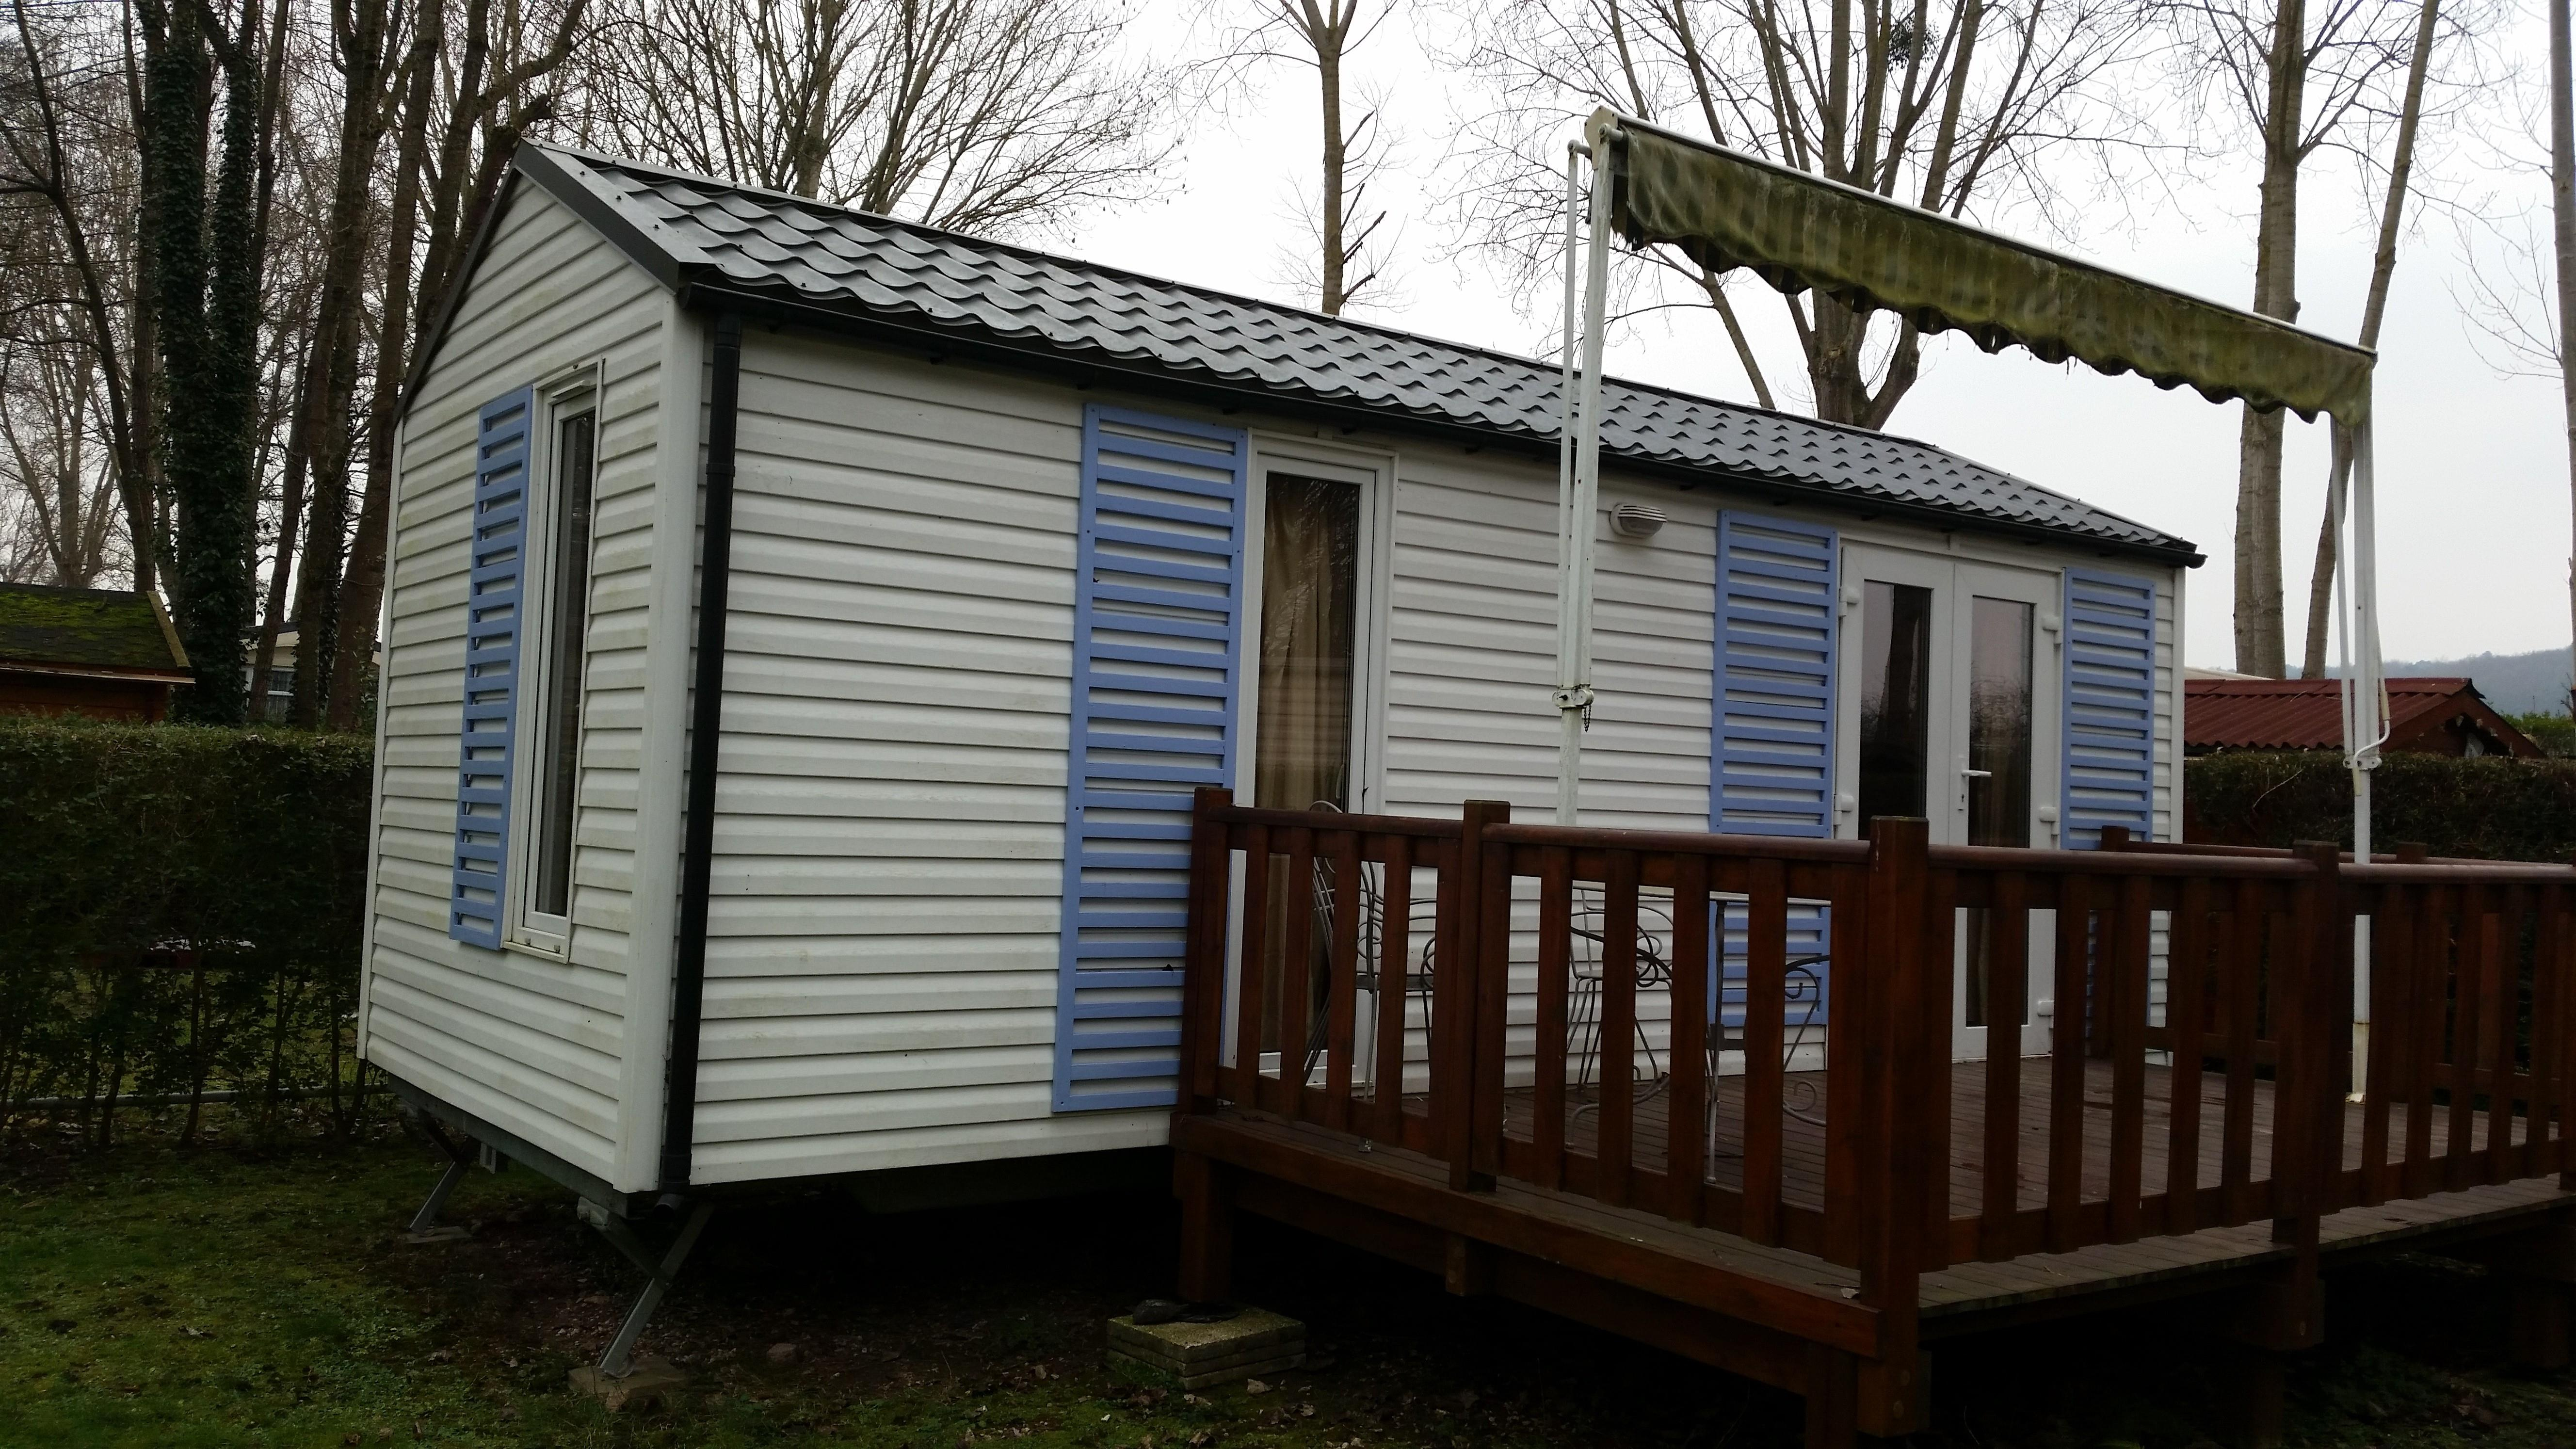 Location - Casa Wood 29 - Le Cattiaux Camping